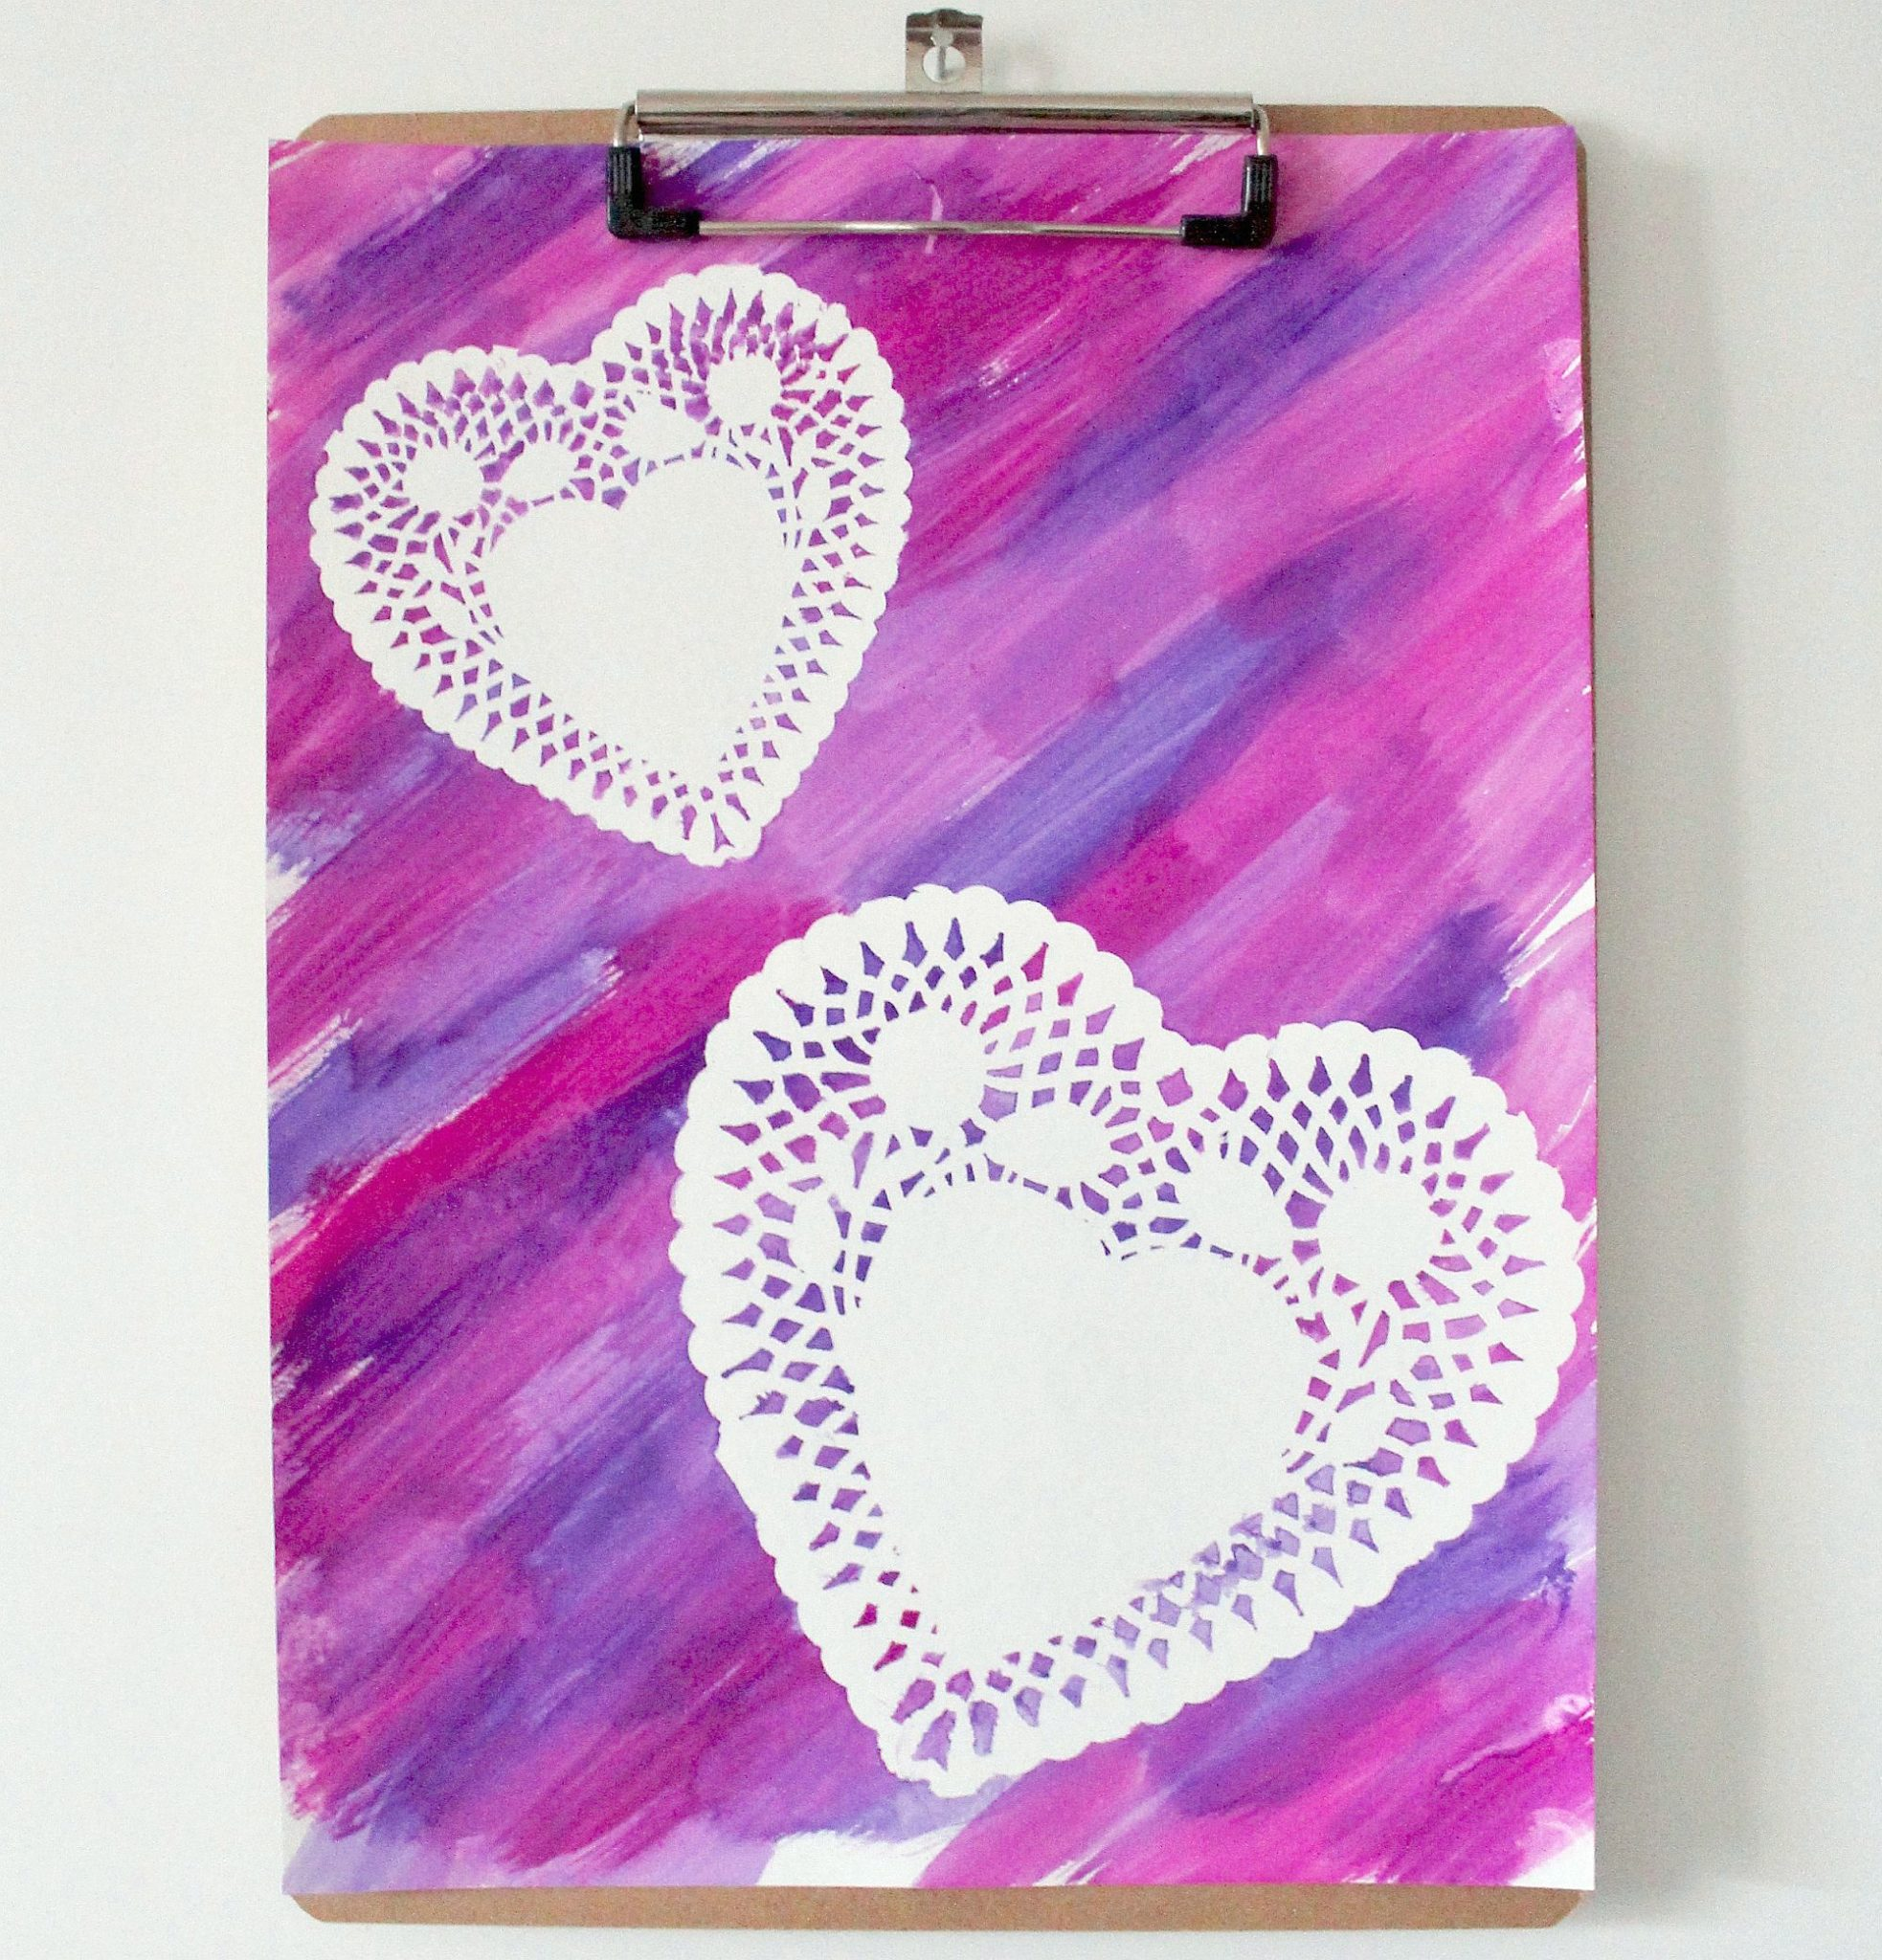 Doily Heart Painting with Purple Panache